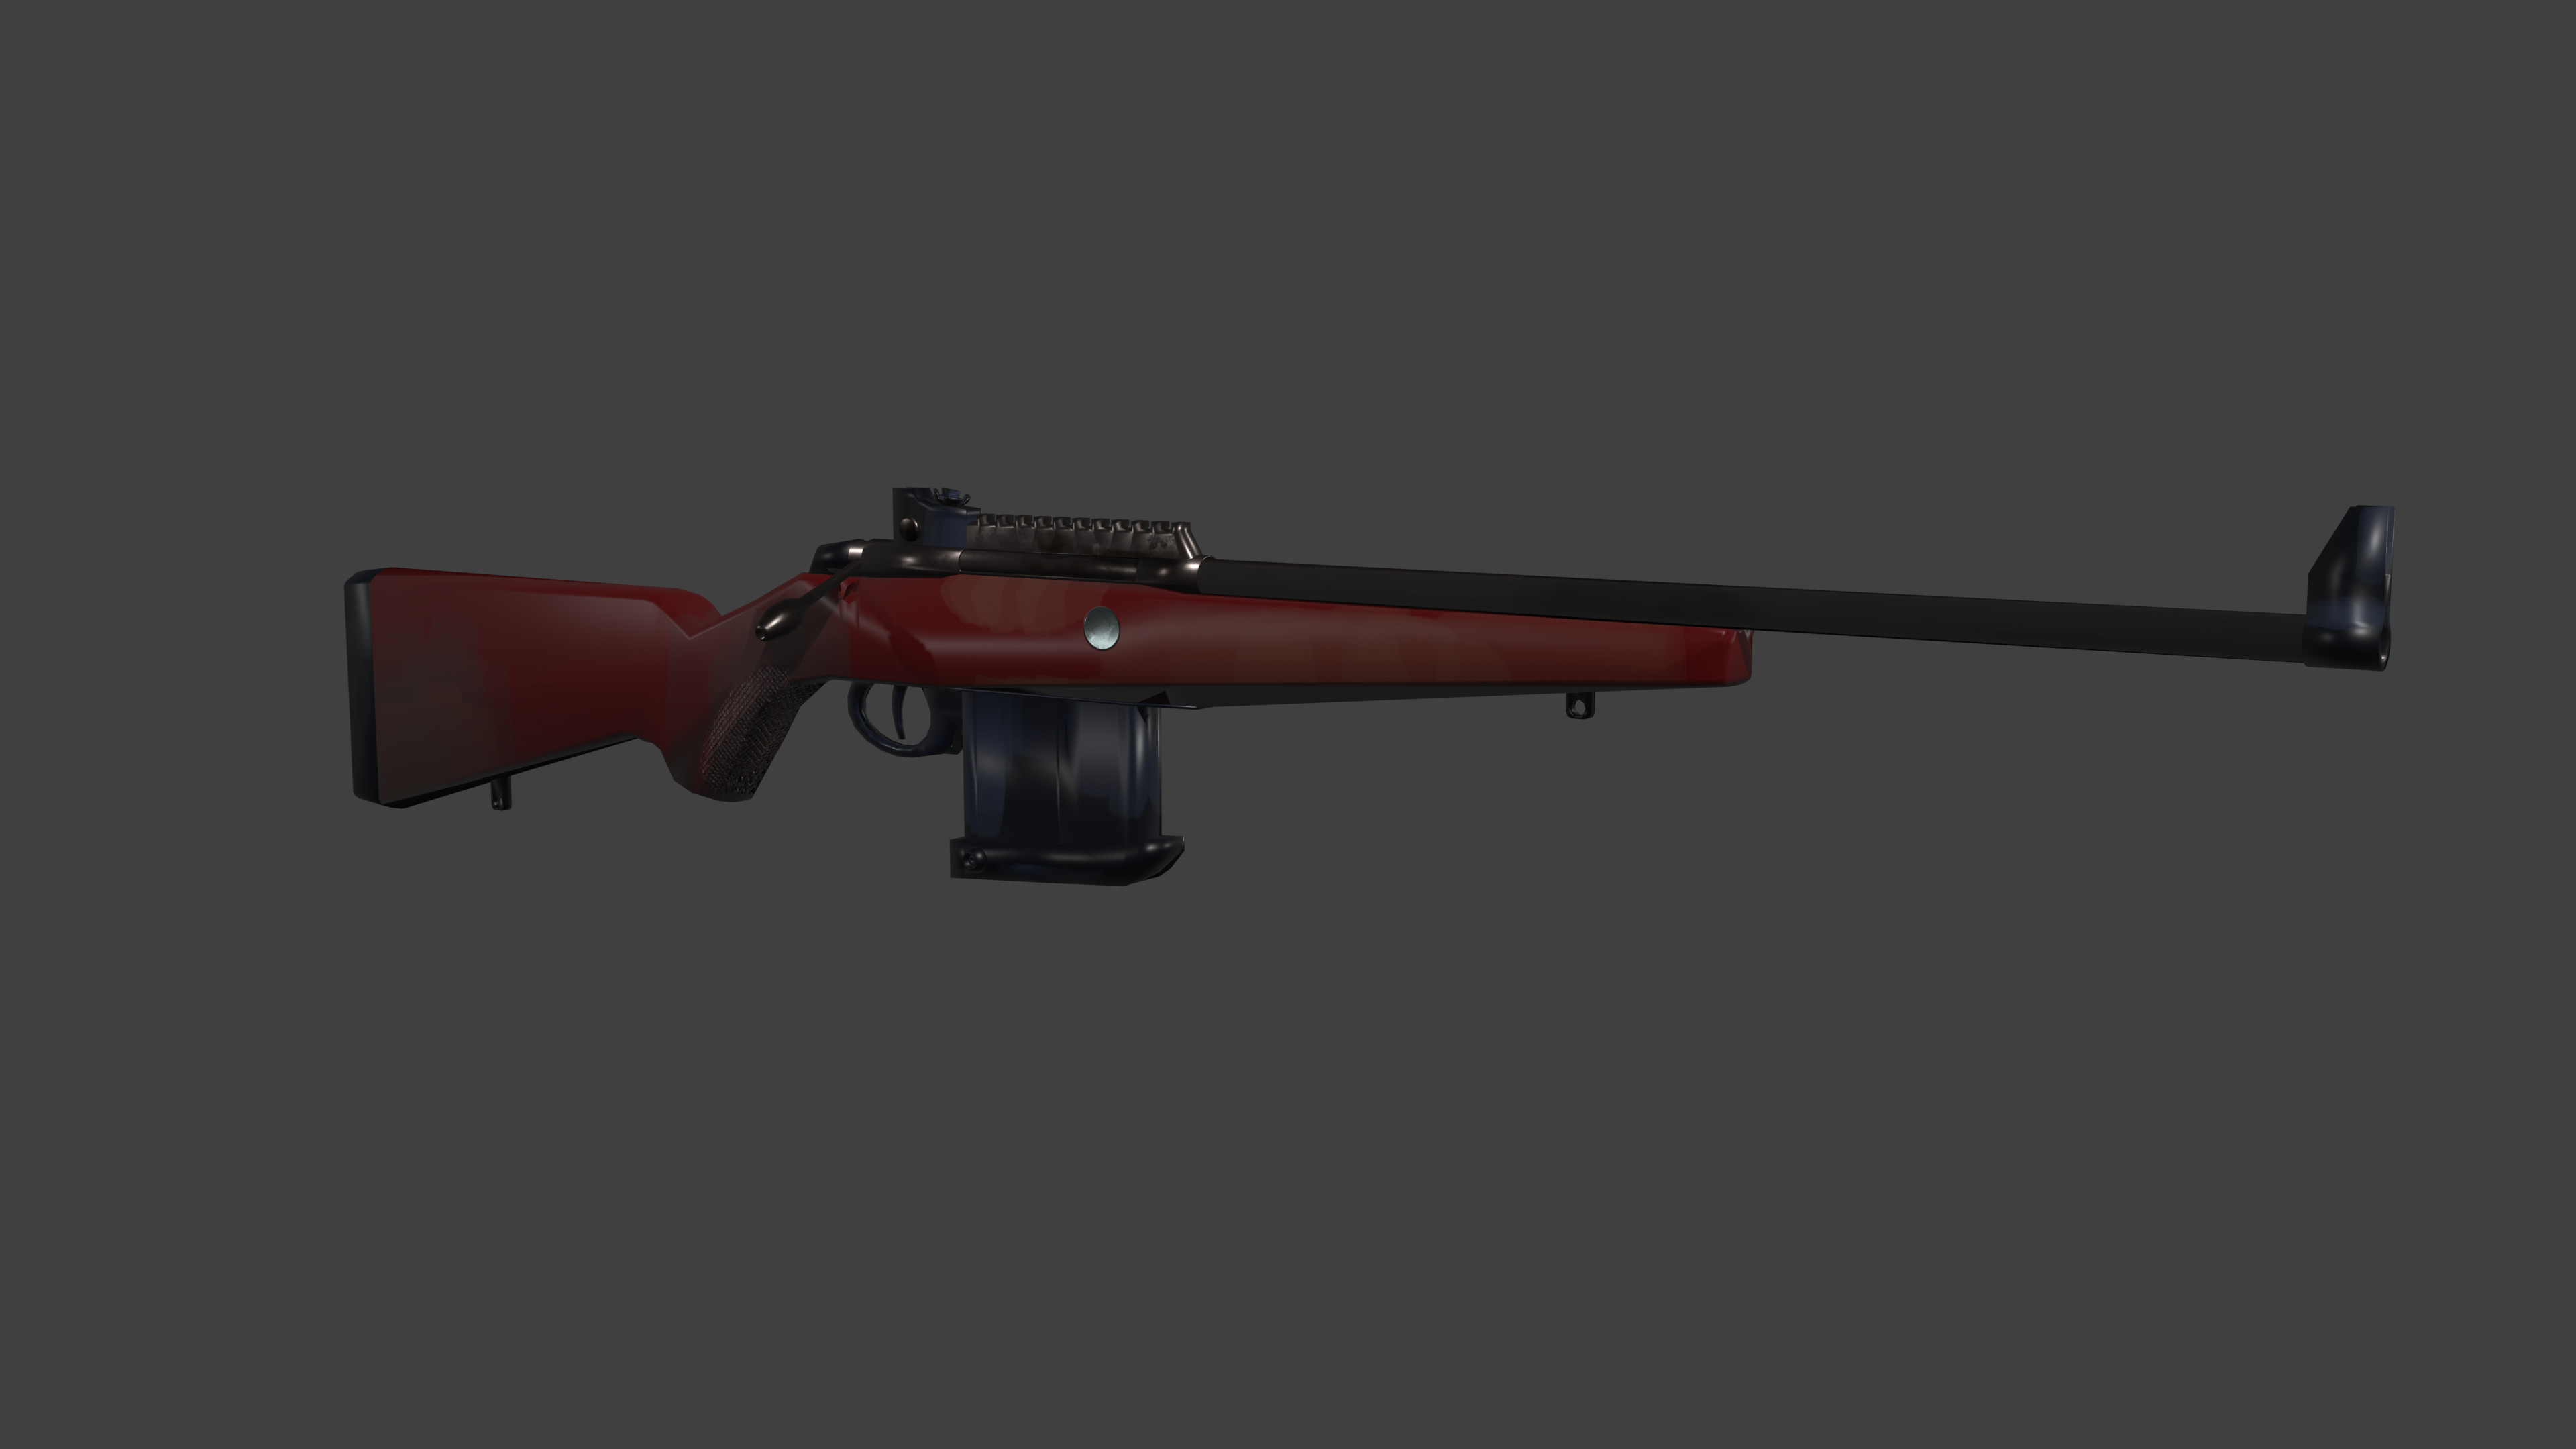 Tikka t3x Arctic Rilfe. Doesn't have its usual tricolor stock finish though.